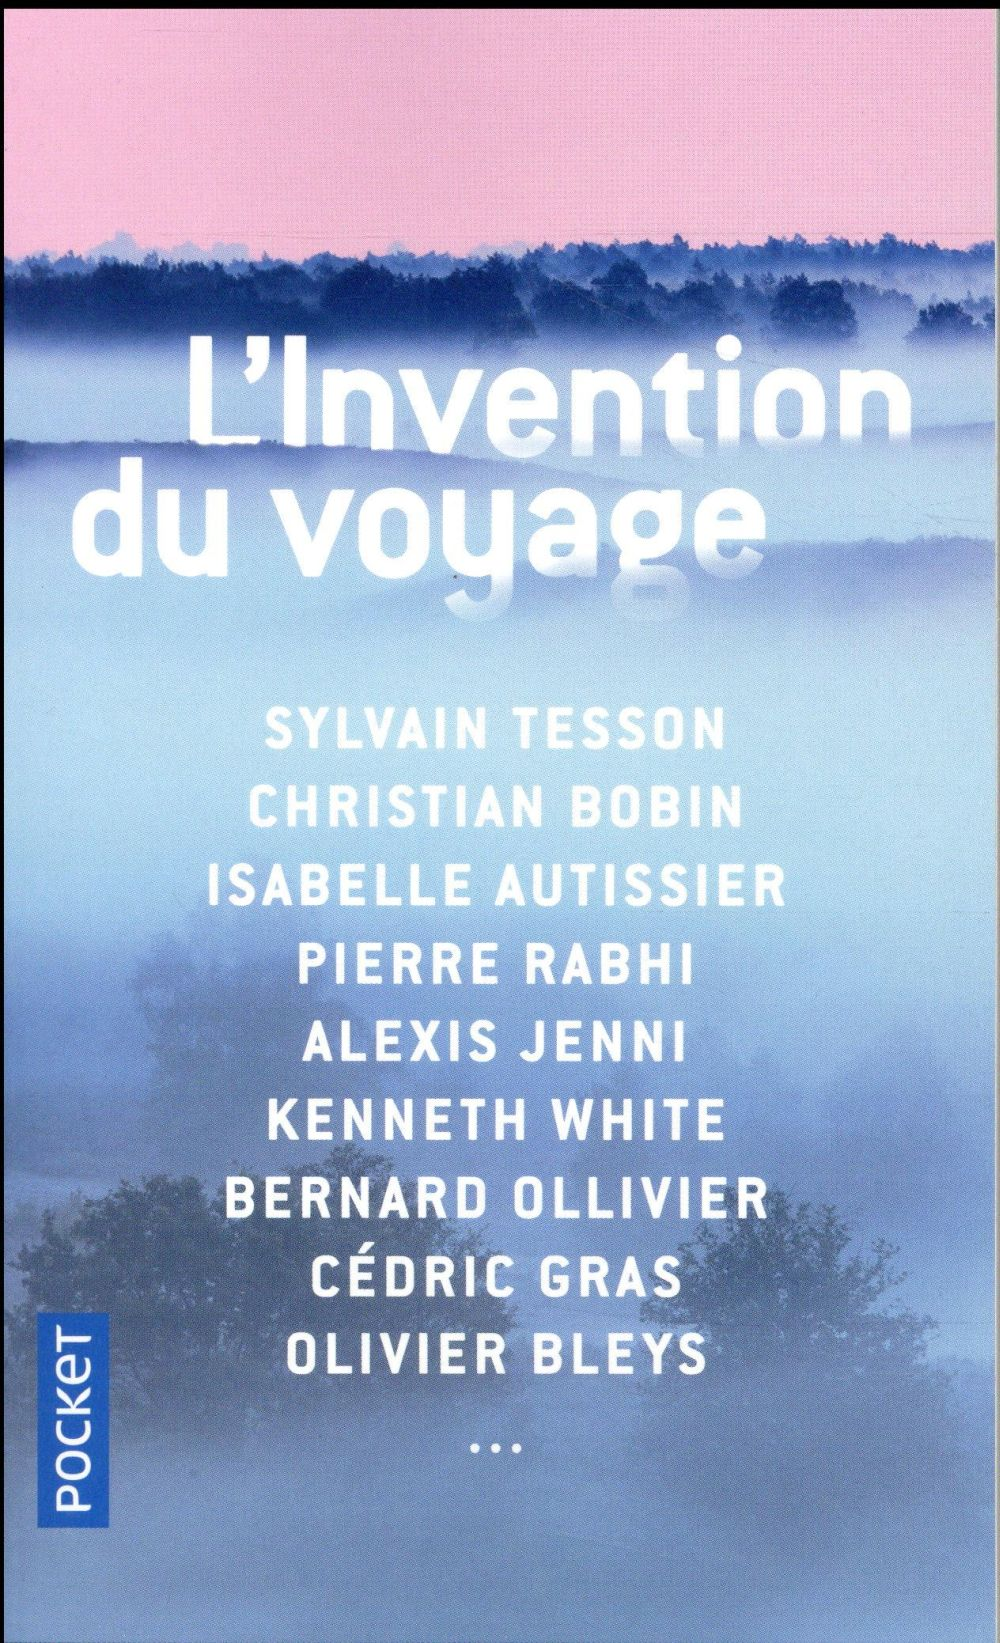 L'invention du voyage